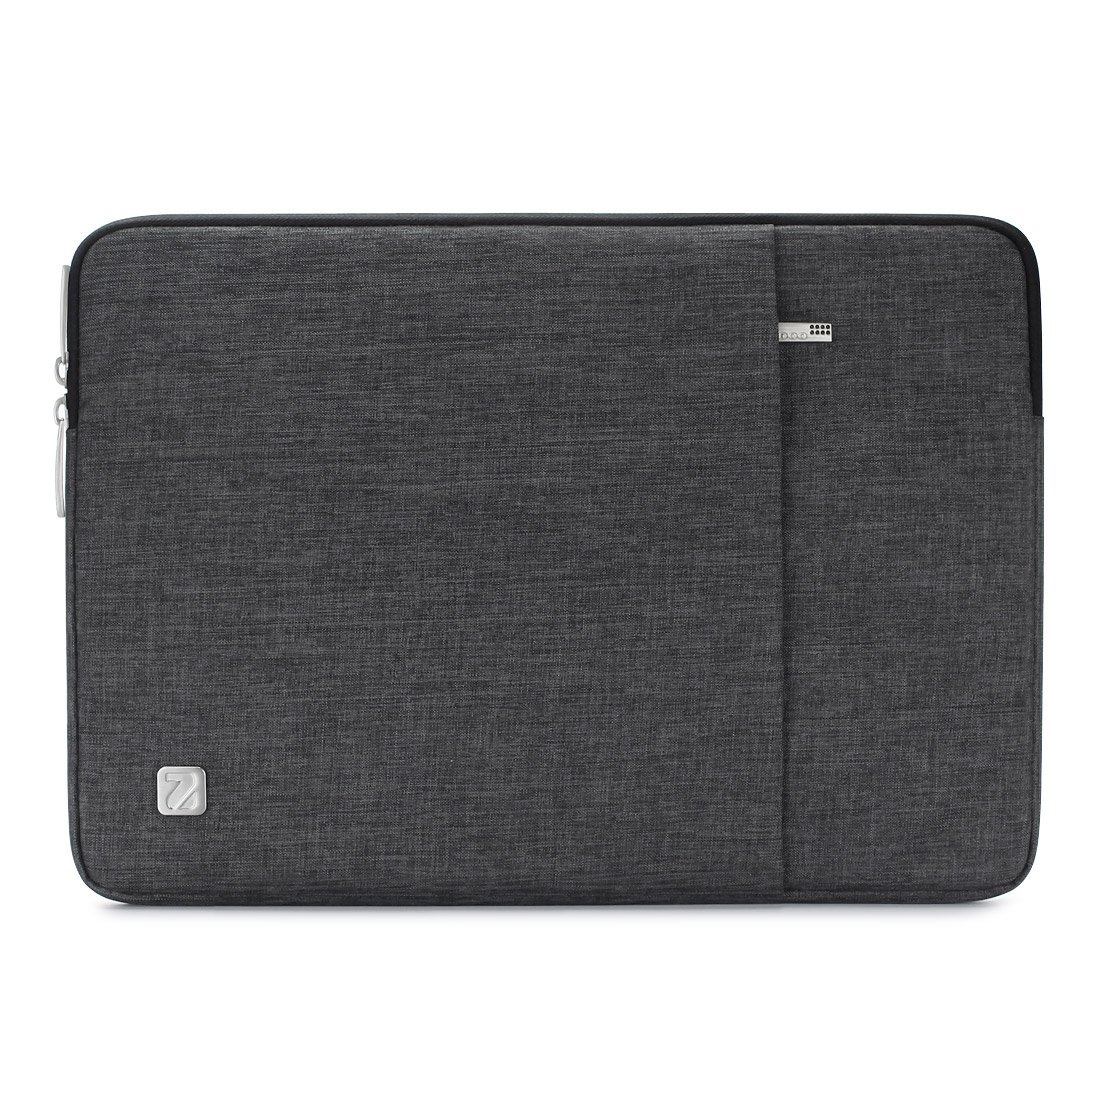 NIDOO 14 Inch Laptop Sleeve Water-Resistant Computer Case Portable Carrying Bag for 14'' Notebook / 14'' Lenovo ThinkPad E480 / Yoga 920/13.5'' Microsoft Surface Book, Dark Grey by NIDOO